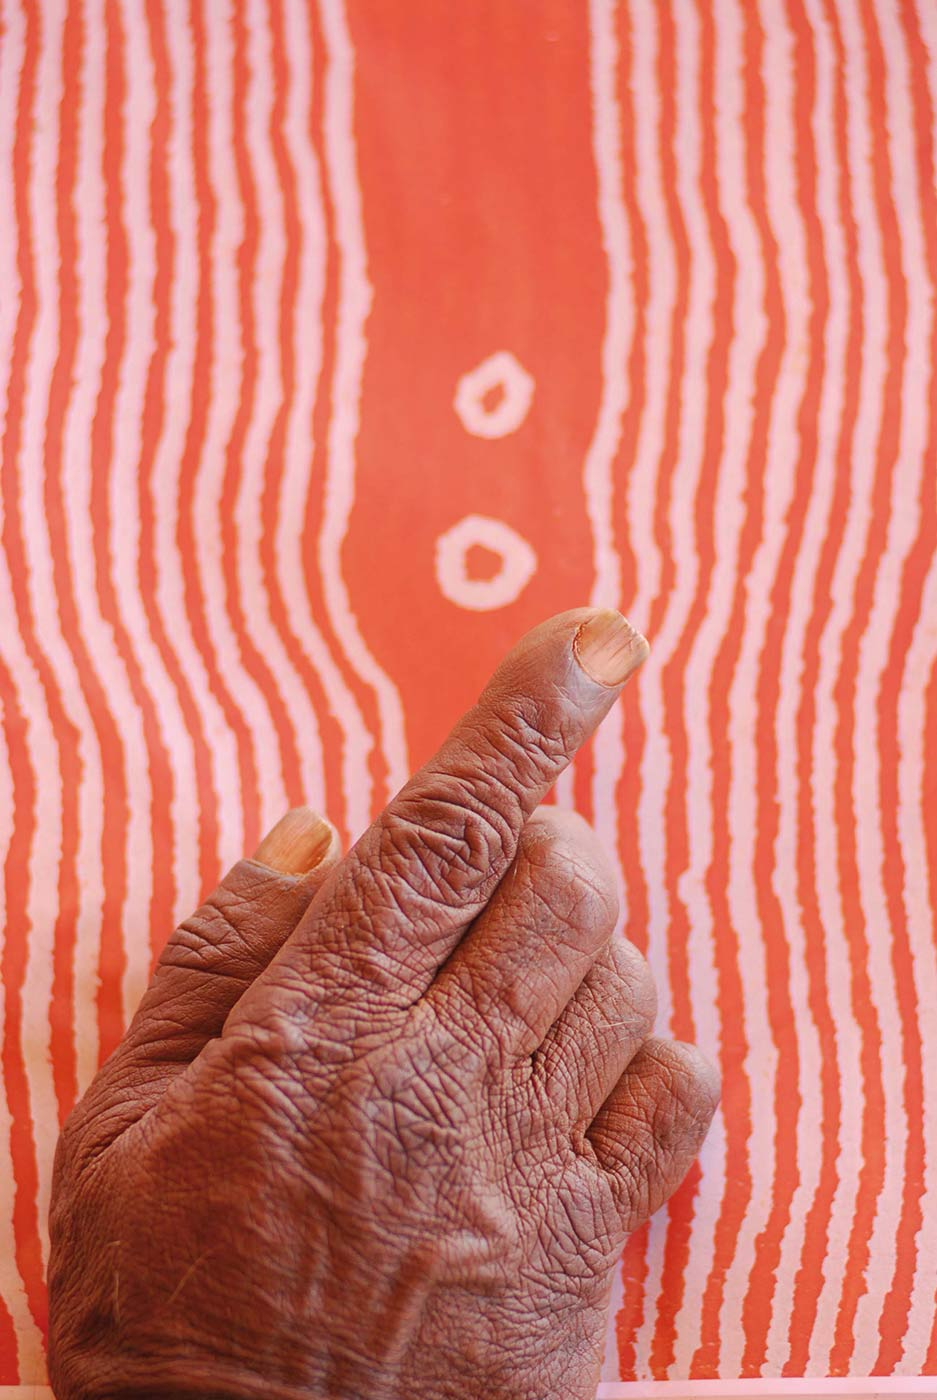 Colour photo of a hand hovering over a painting. - click to view larger image